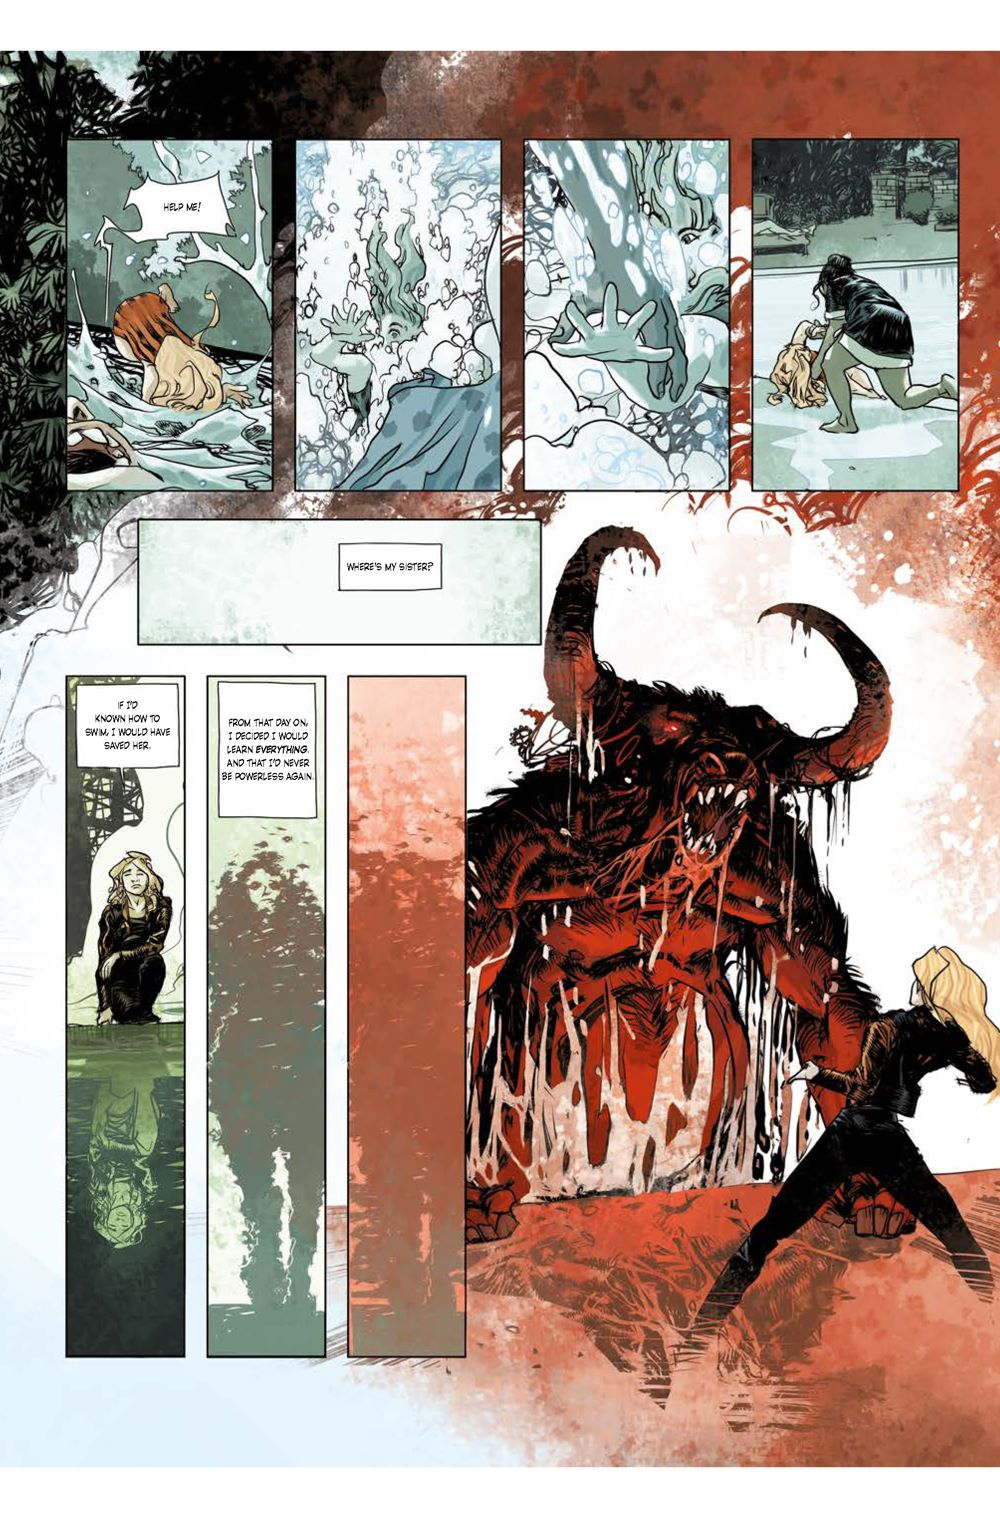 Cutting-Edge-The-Devils-Mirror-2-Binder1_Page_1 ComicList Previews: CUTTING EDGE THE DEVIL'S MIRROR #2 (OF 2)